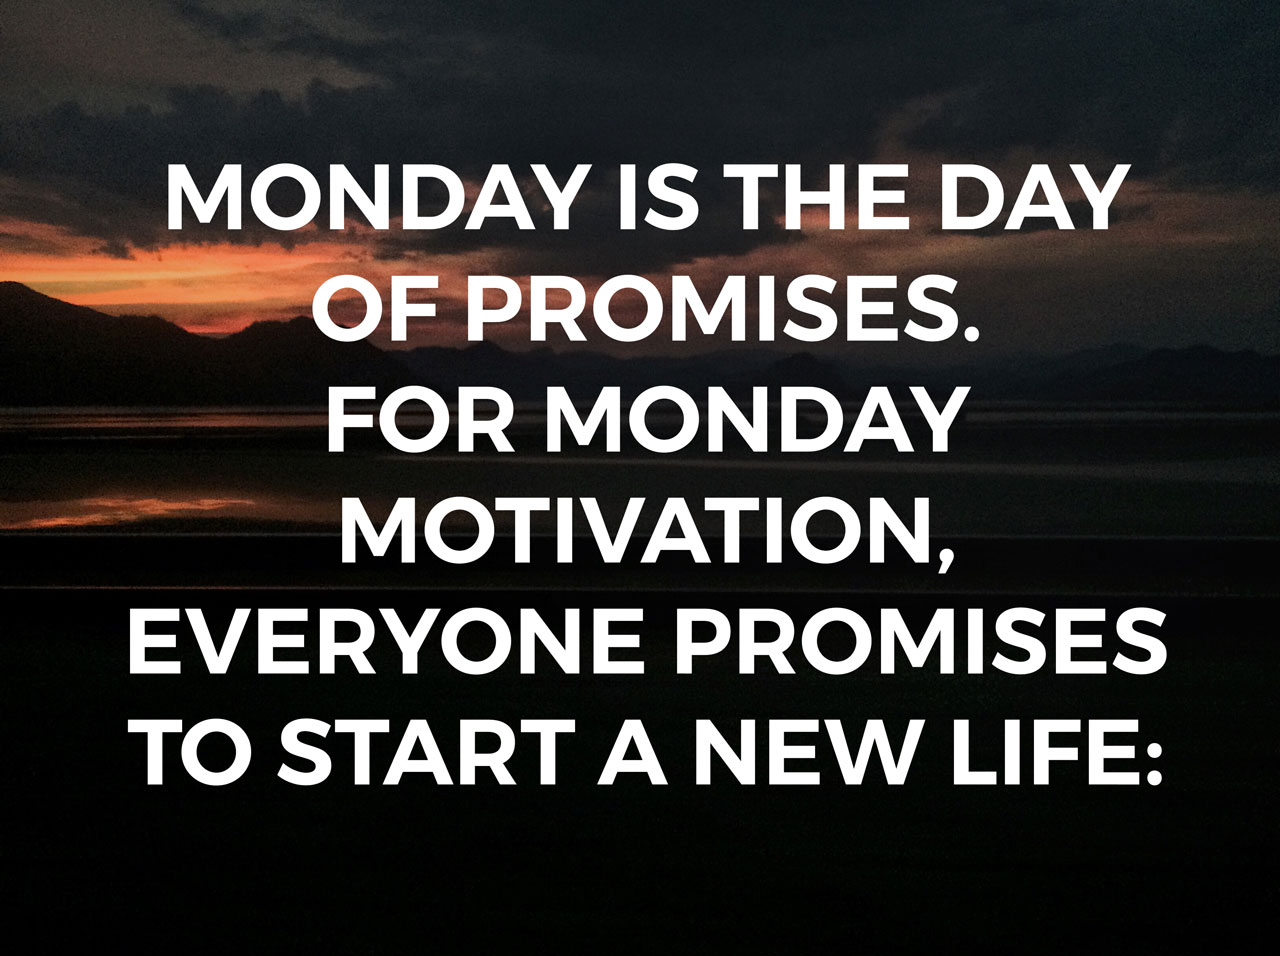 Monday-is-the-day-of-promises.-For-monday-motivation,-everyone-promises-to-start-a-new-life